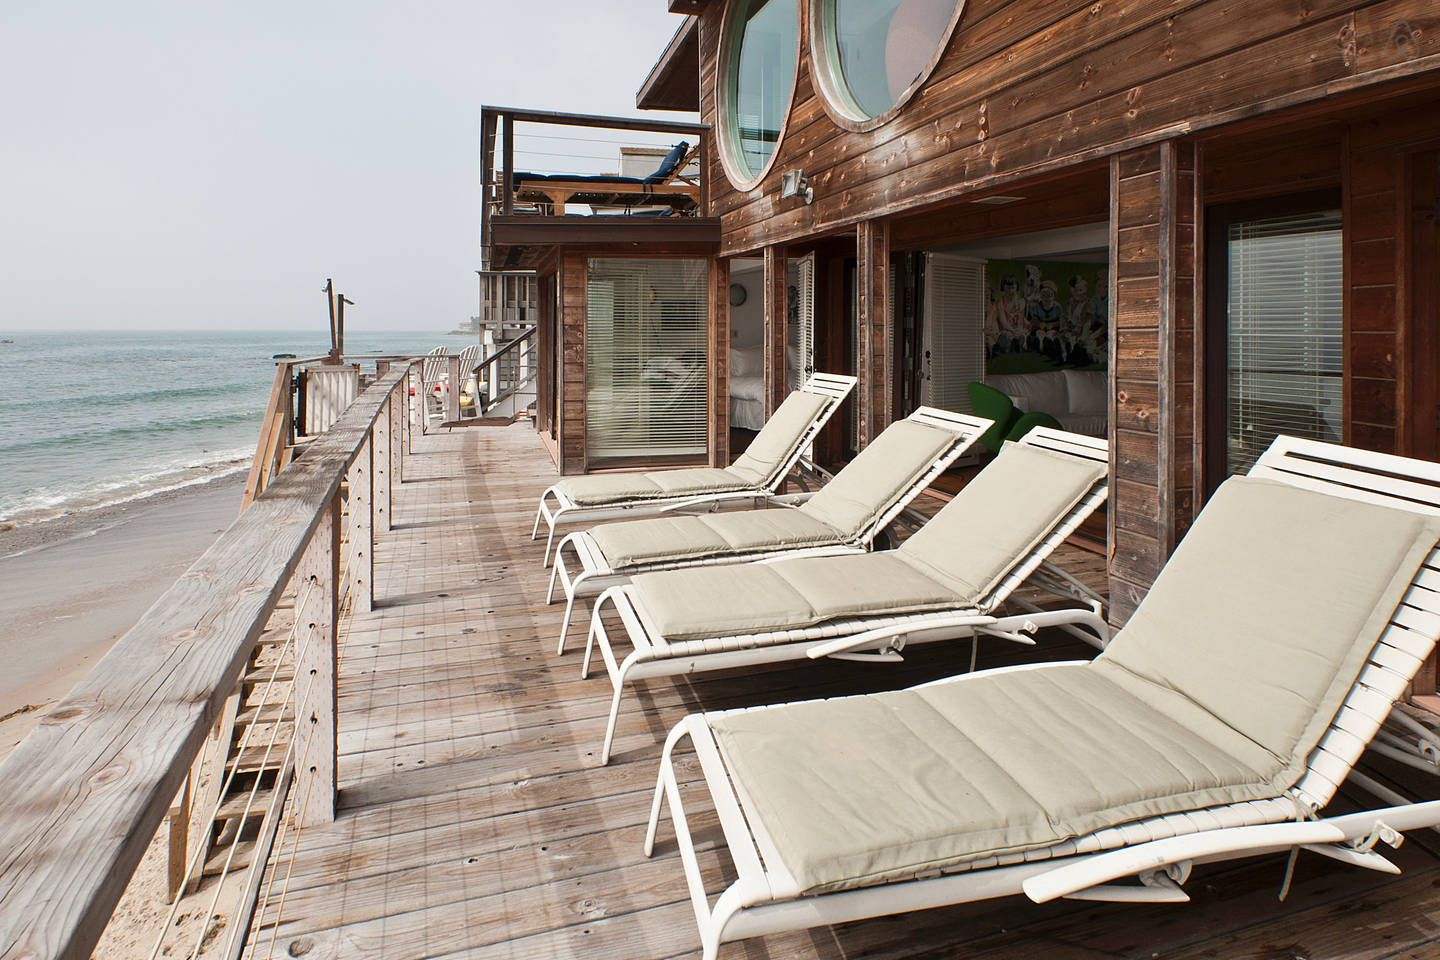 Would love to stay in this Airbnb Malibu Beach House